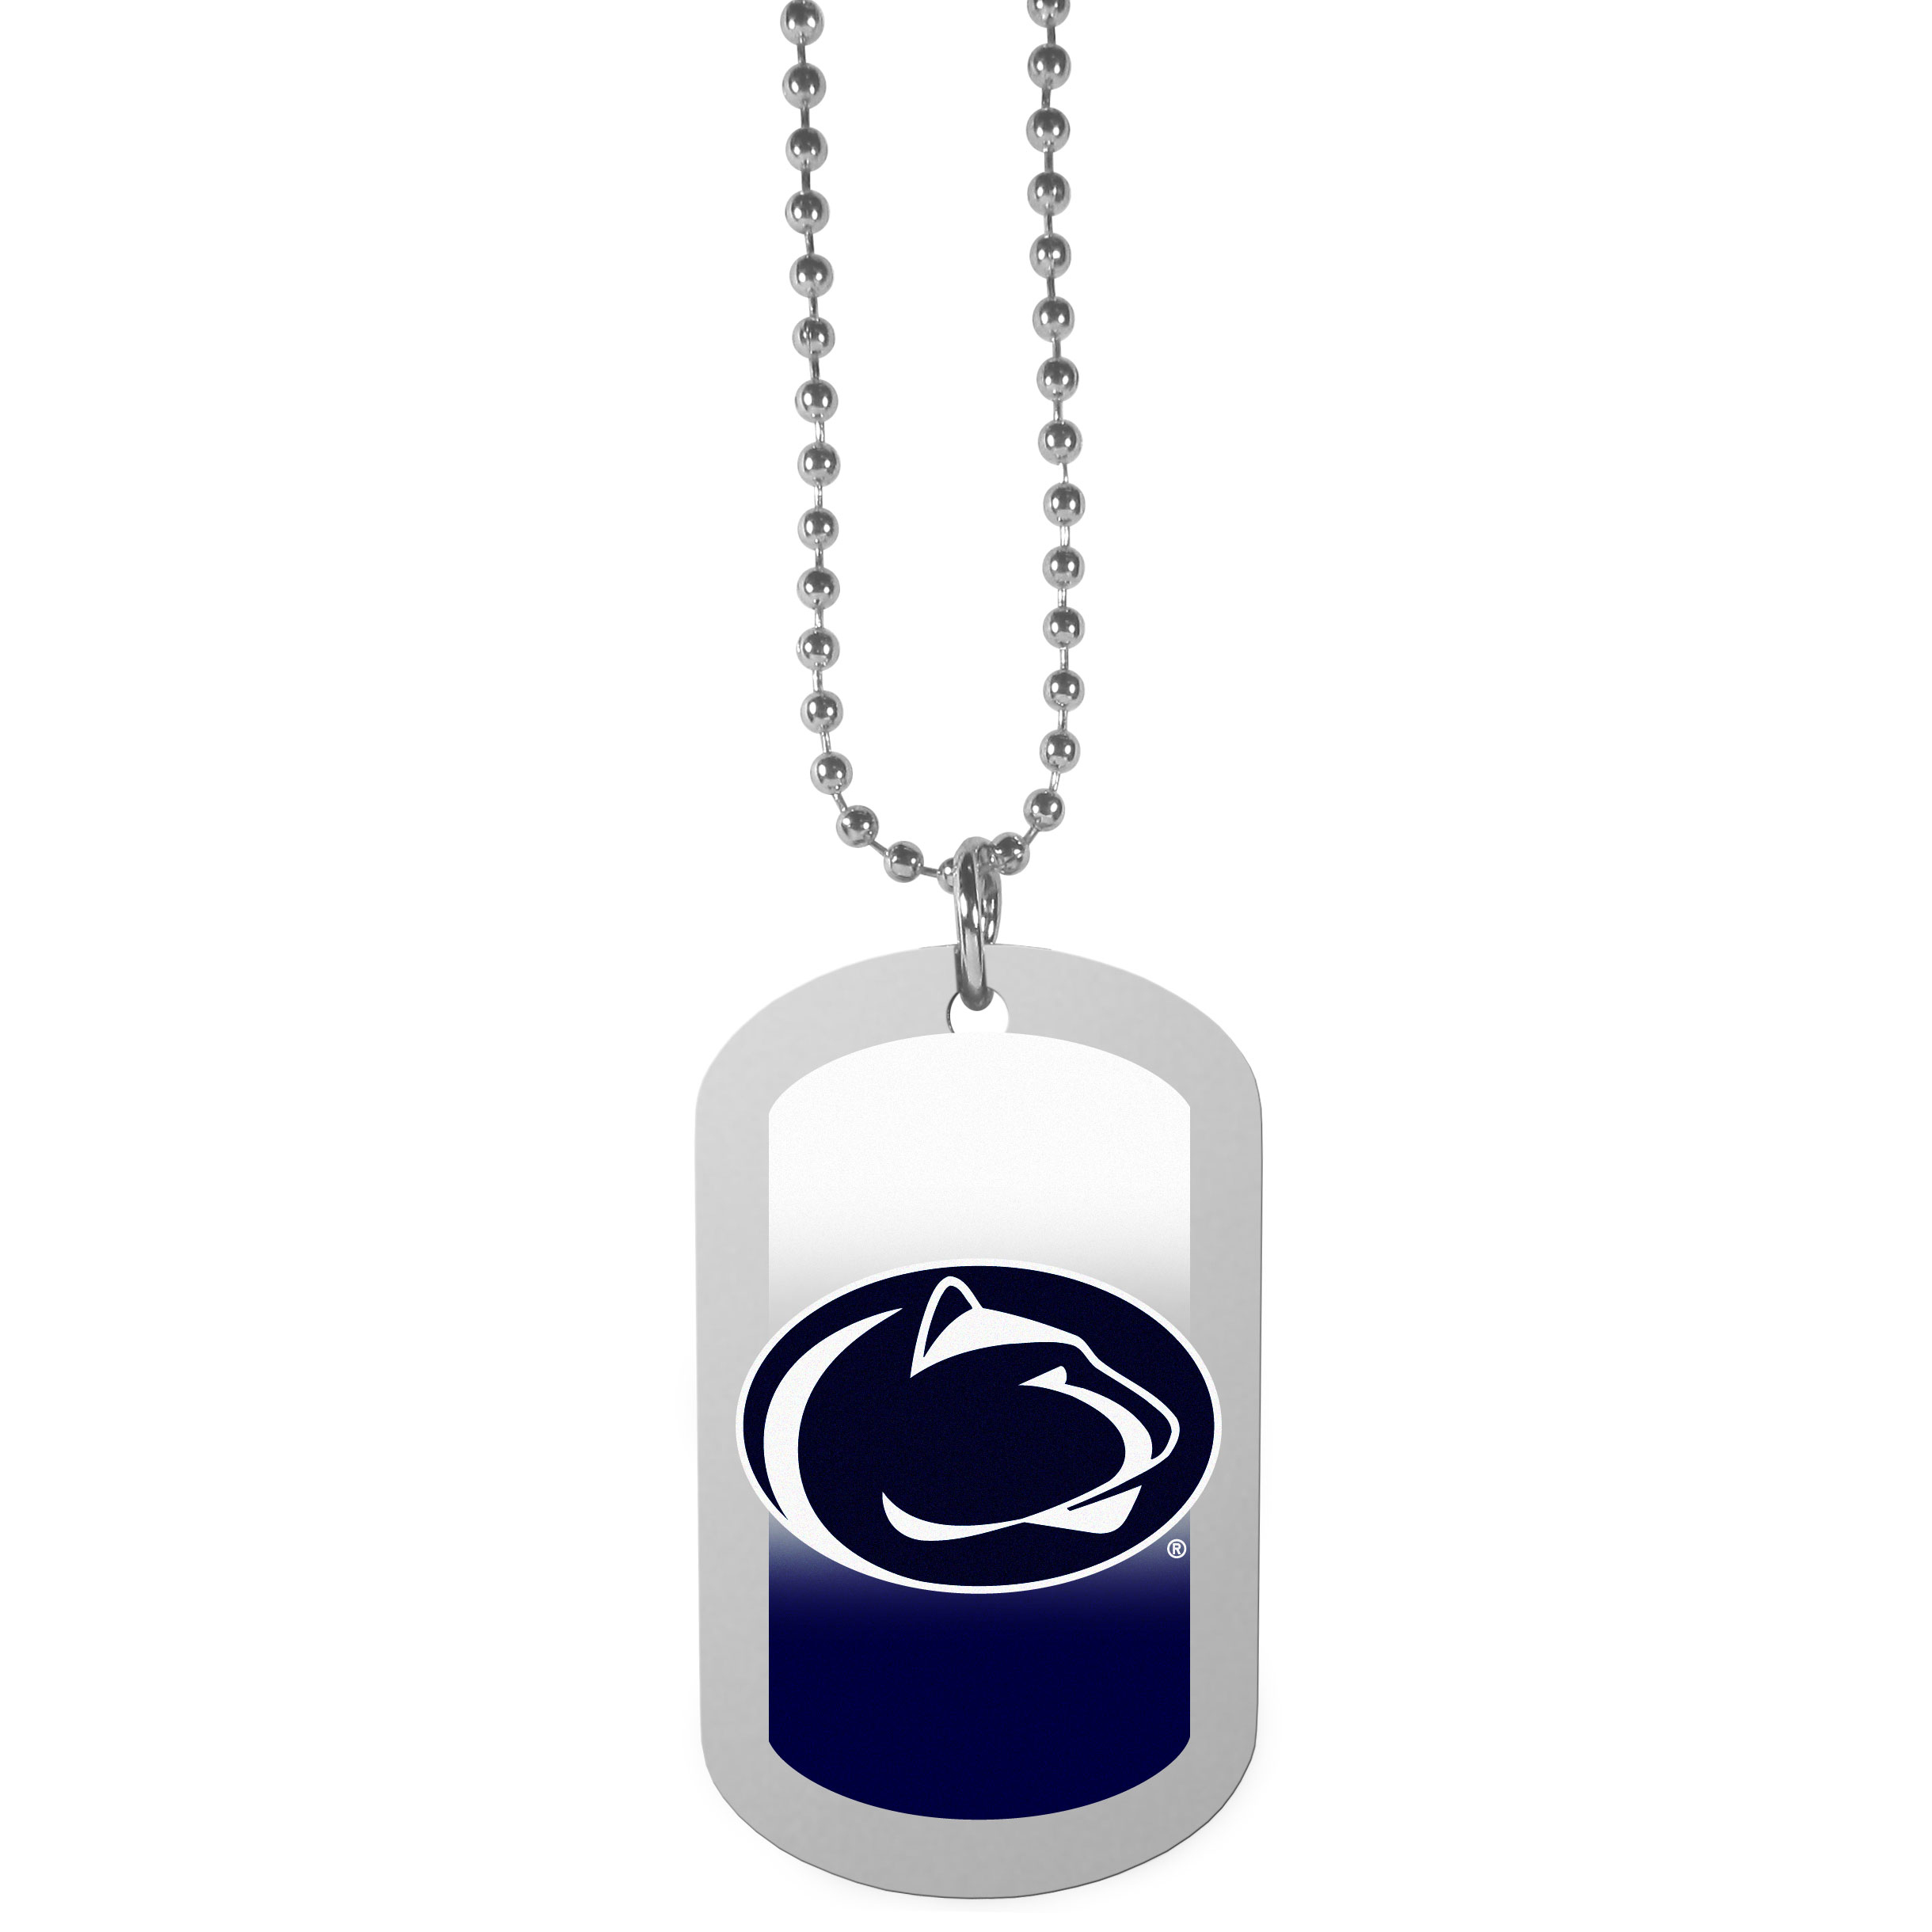 Penn St. Nittany Lions Team Tag Necklace - Dog tag necklaces are a fashion statement that is here to stay. The sporty version of the classic tag features a gradient print in team colors featuring a full color team logo over a high polish tag to create a bold and sporty look. The tag comes on a 26 inch ball chain with a ball and joint clasp. Any Penn St. Nittany Lions would be proud to wear this attractive fashion accessory.